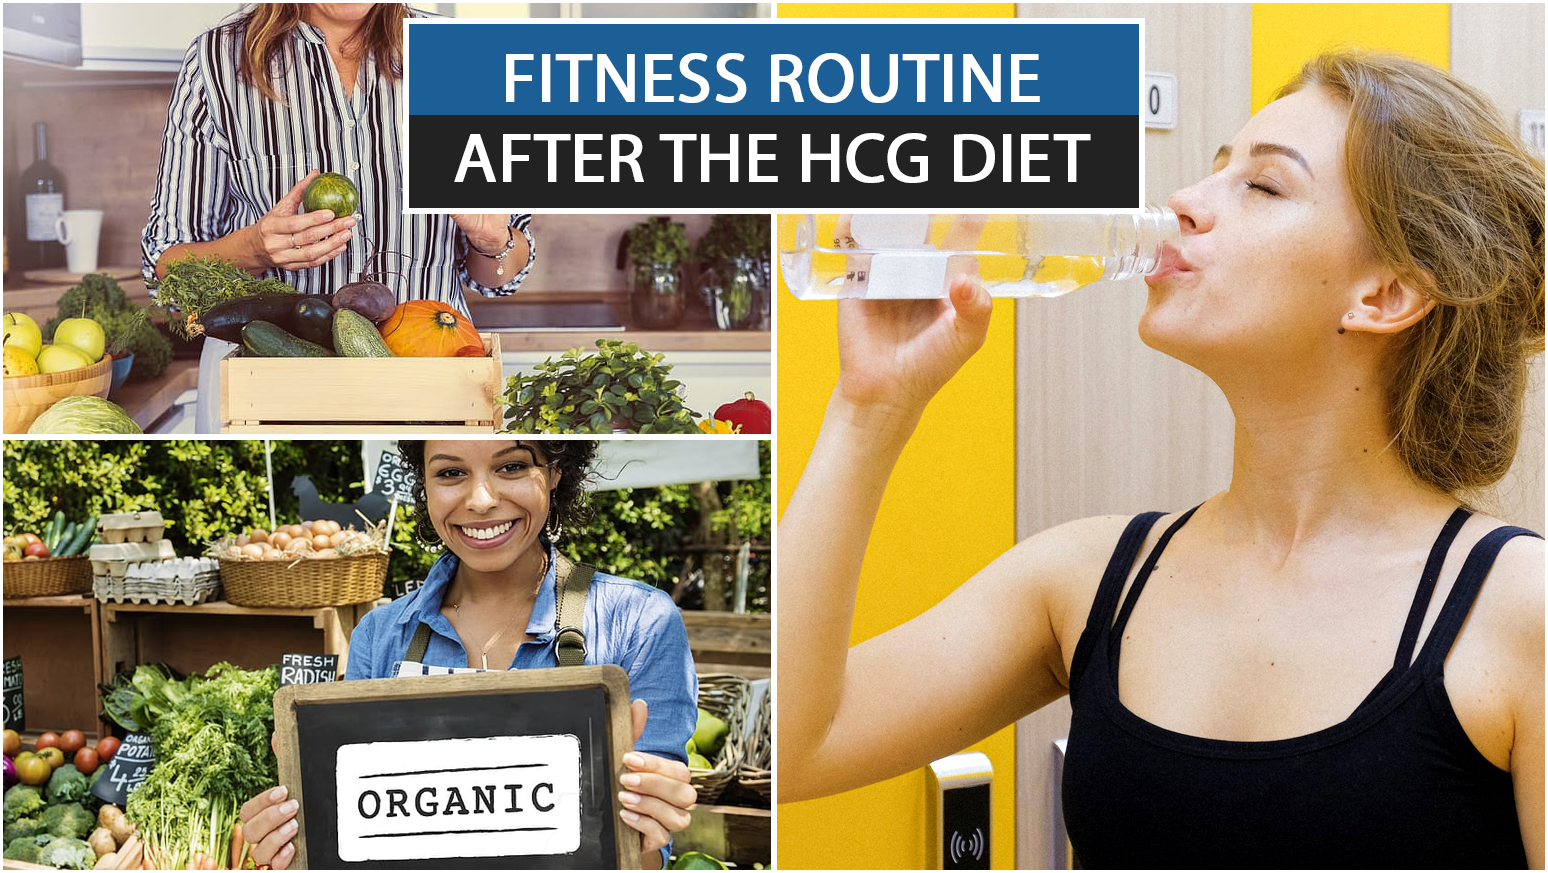 FITNESS ROUTINE AFTER THE HCG DIET